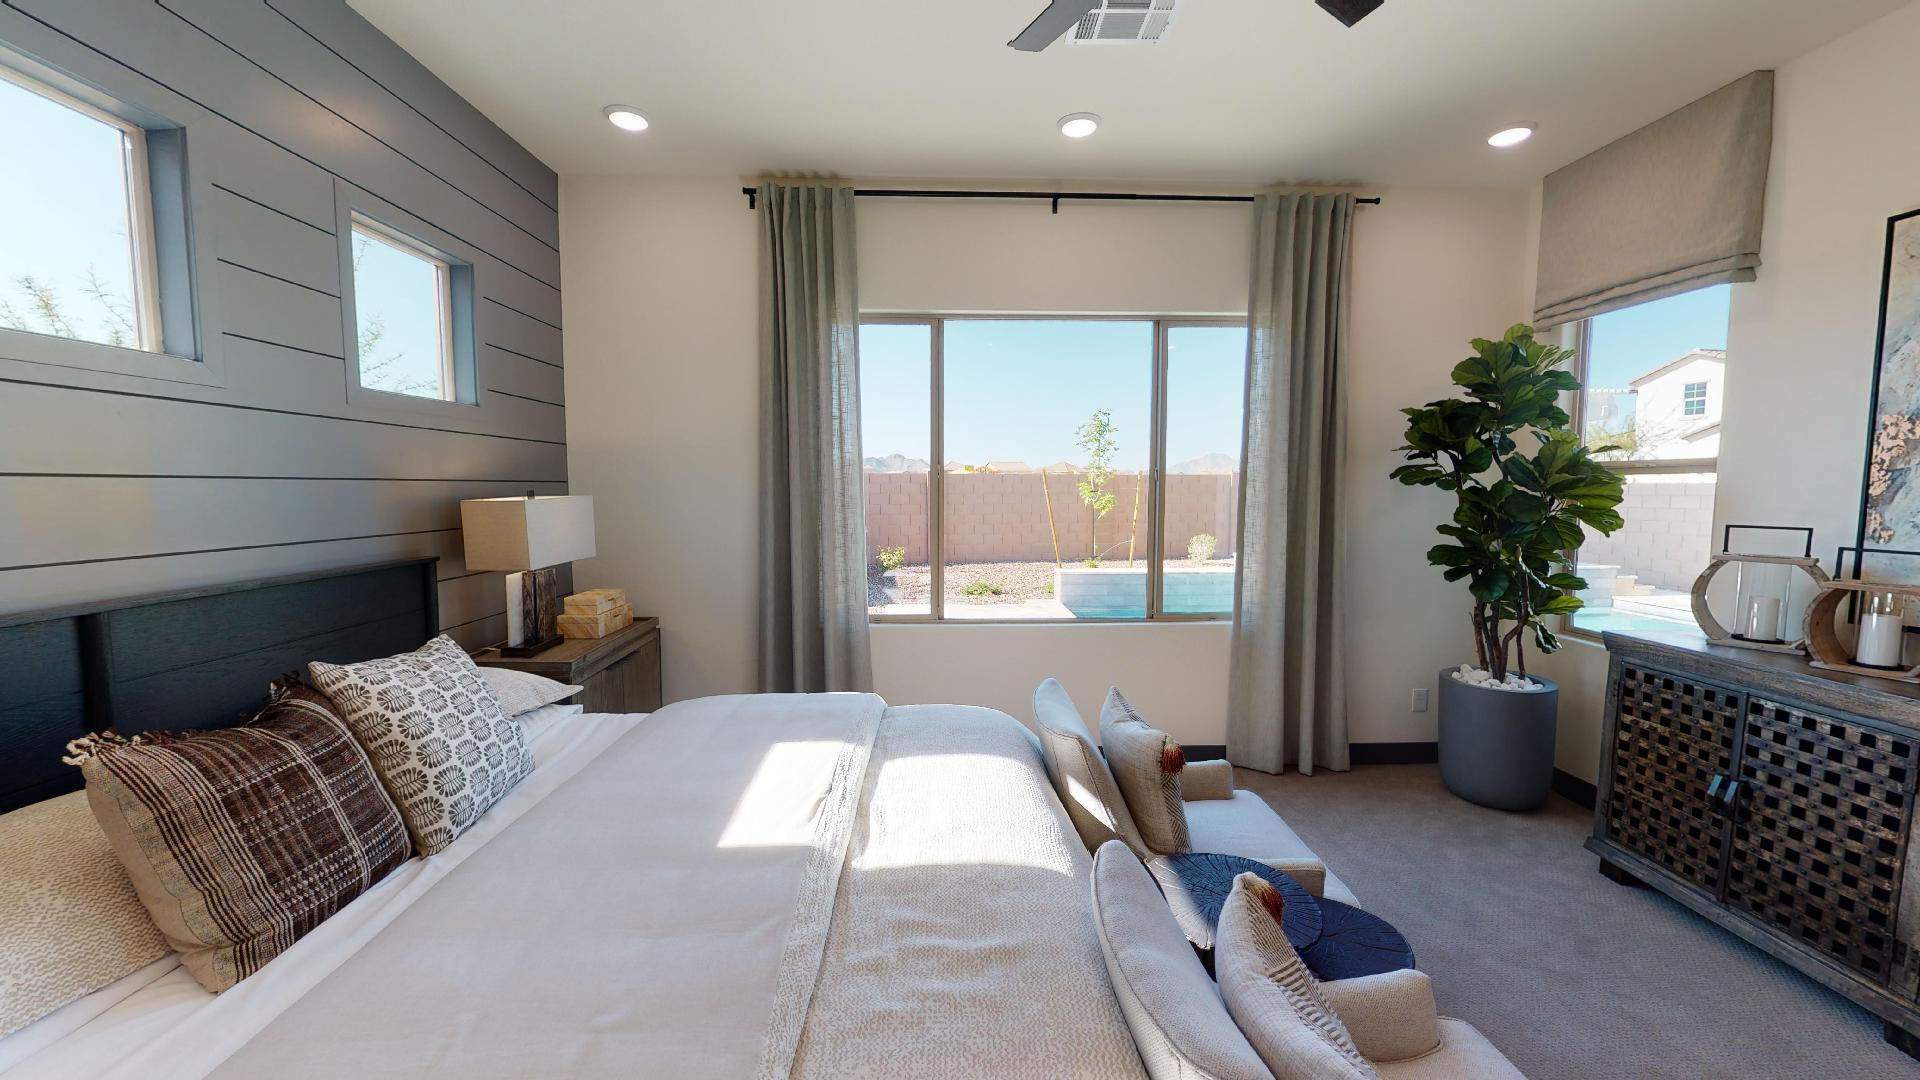 Bedroom featured in the Whetstone By Cresleigh Homes Arizona, Inc. in Phoenix-Mesa, AZ